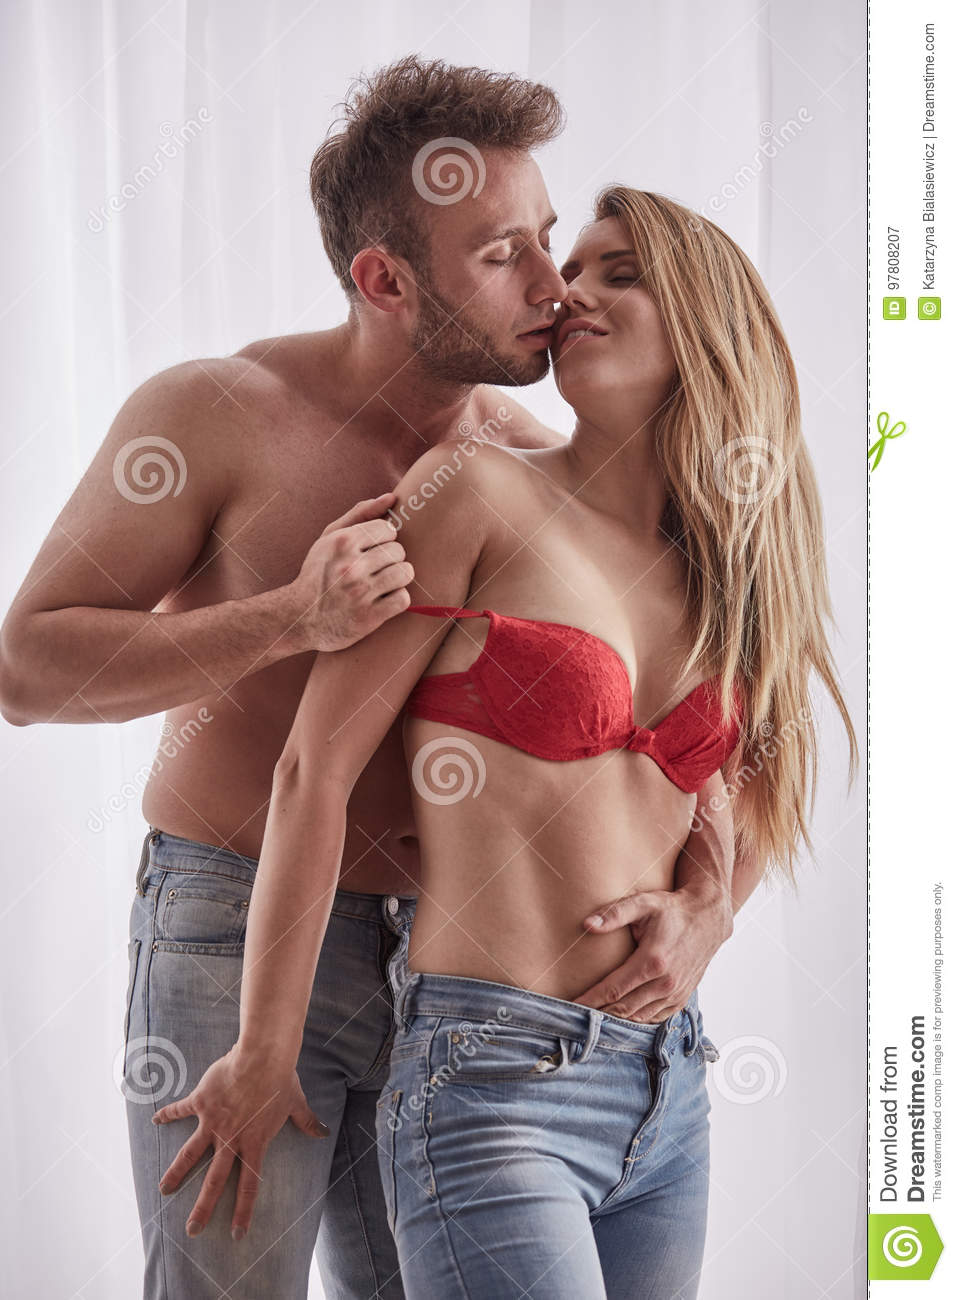 Husband and wife nude pictures